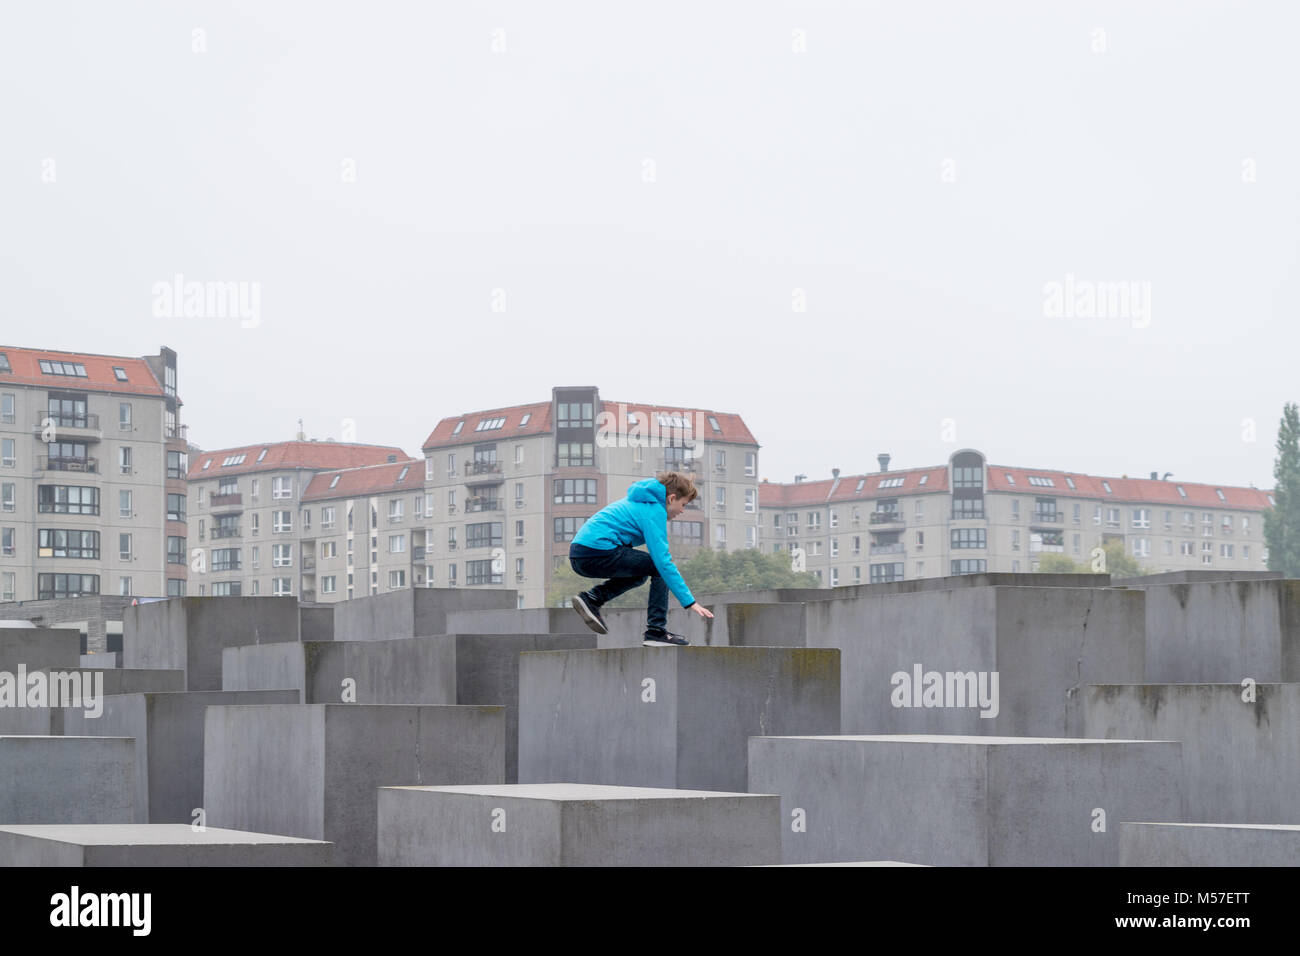 BERLIN - OCTOBER 18, 2016: Trying to climb the stones from the Memorial to the Murdered jews in Berlin - Stock Image